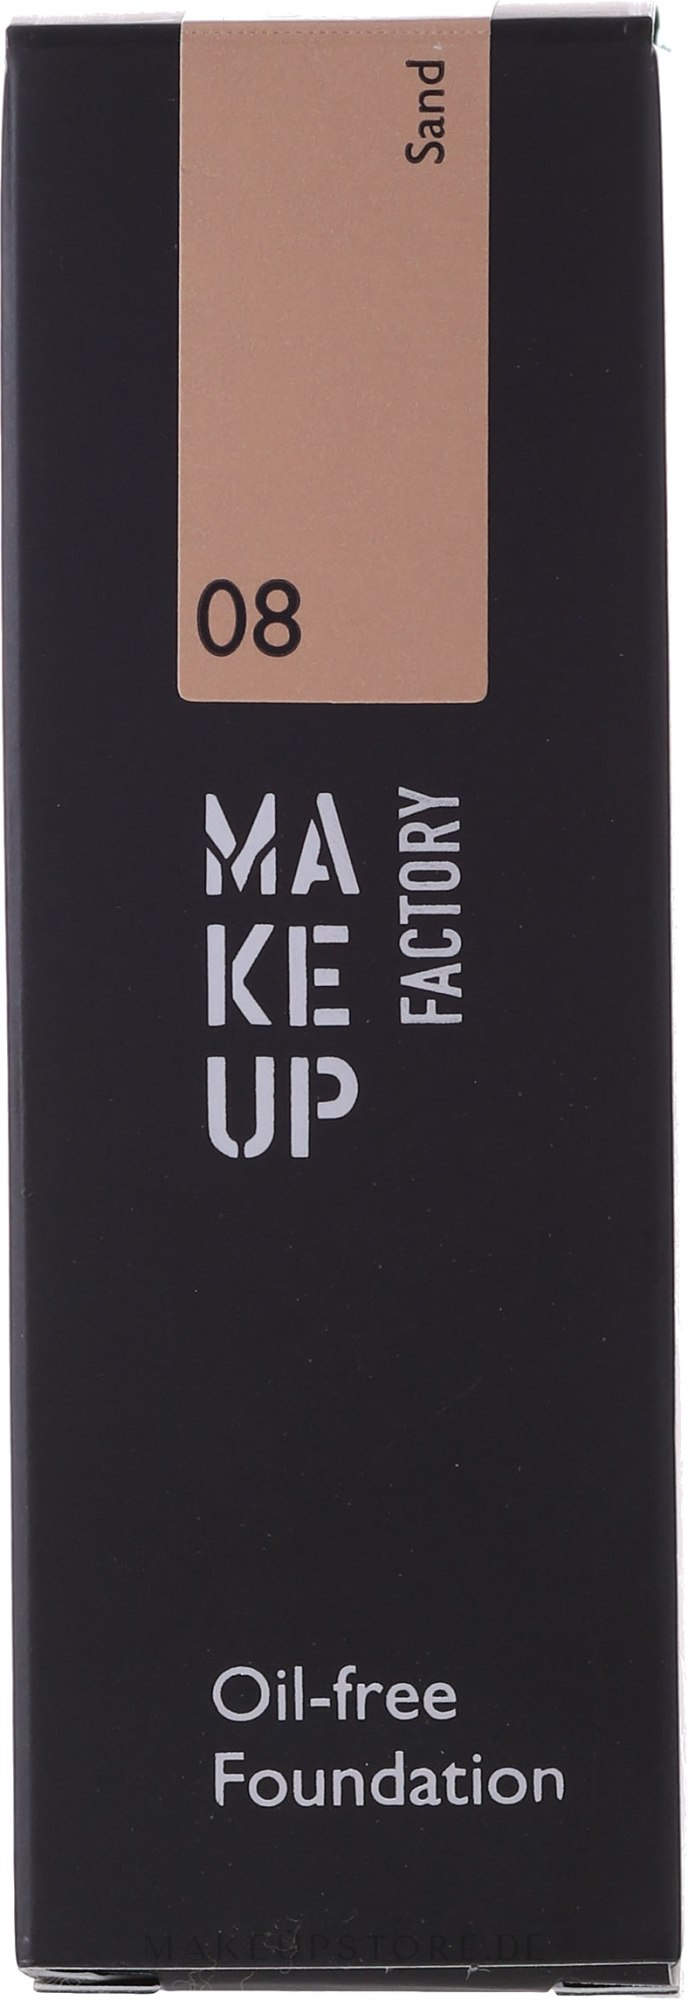 Mattierende ölfreie Foundation - Make Up Factory Oil Free Foundation — Bild 08 - Sand